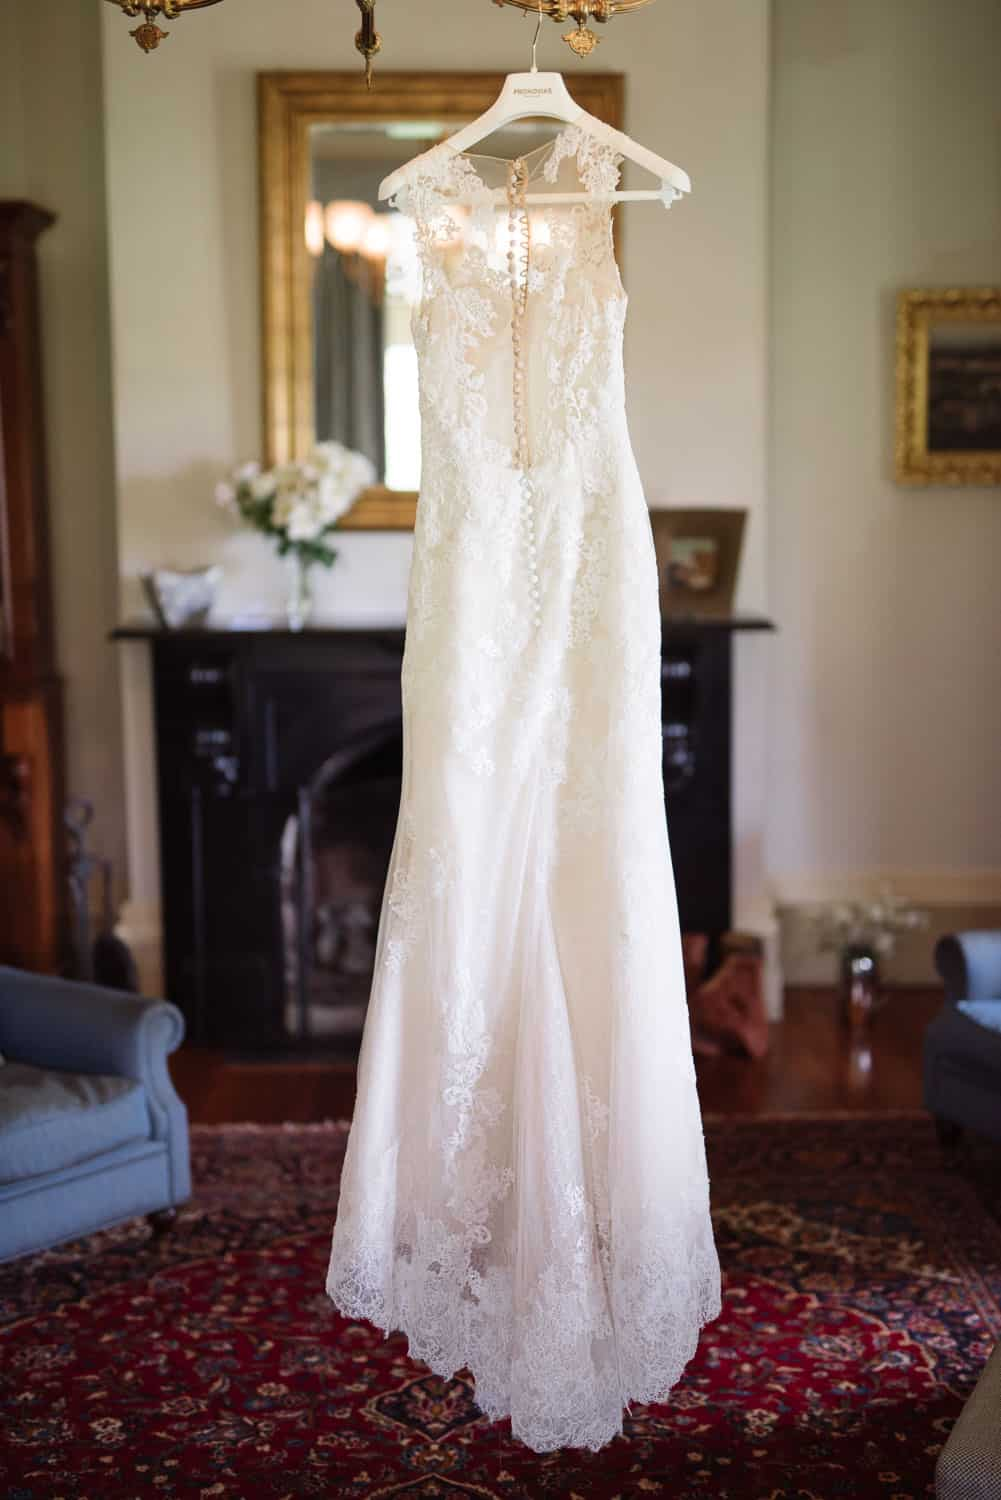 Wedding Dress in Dunkeld